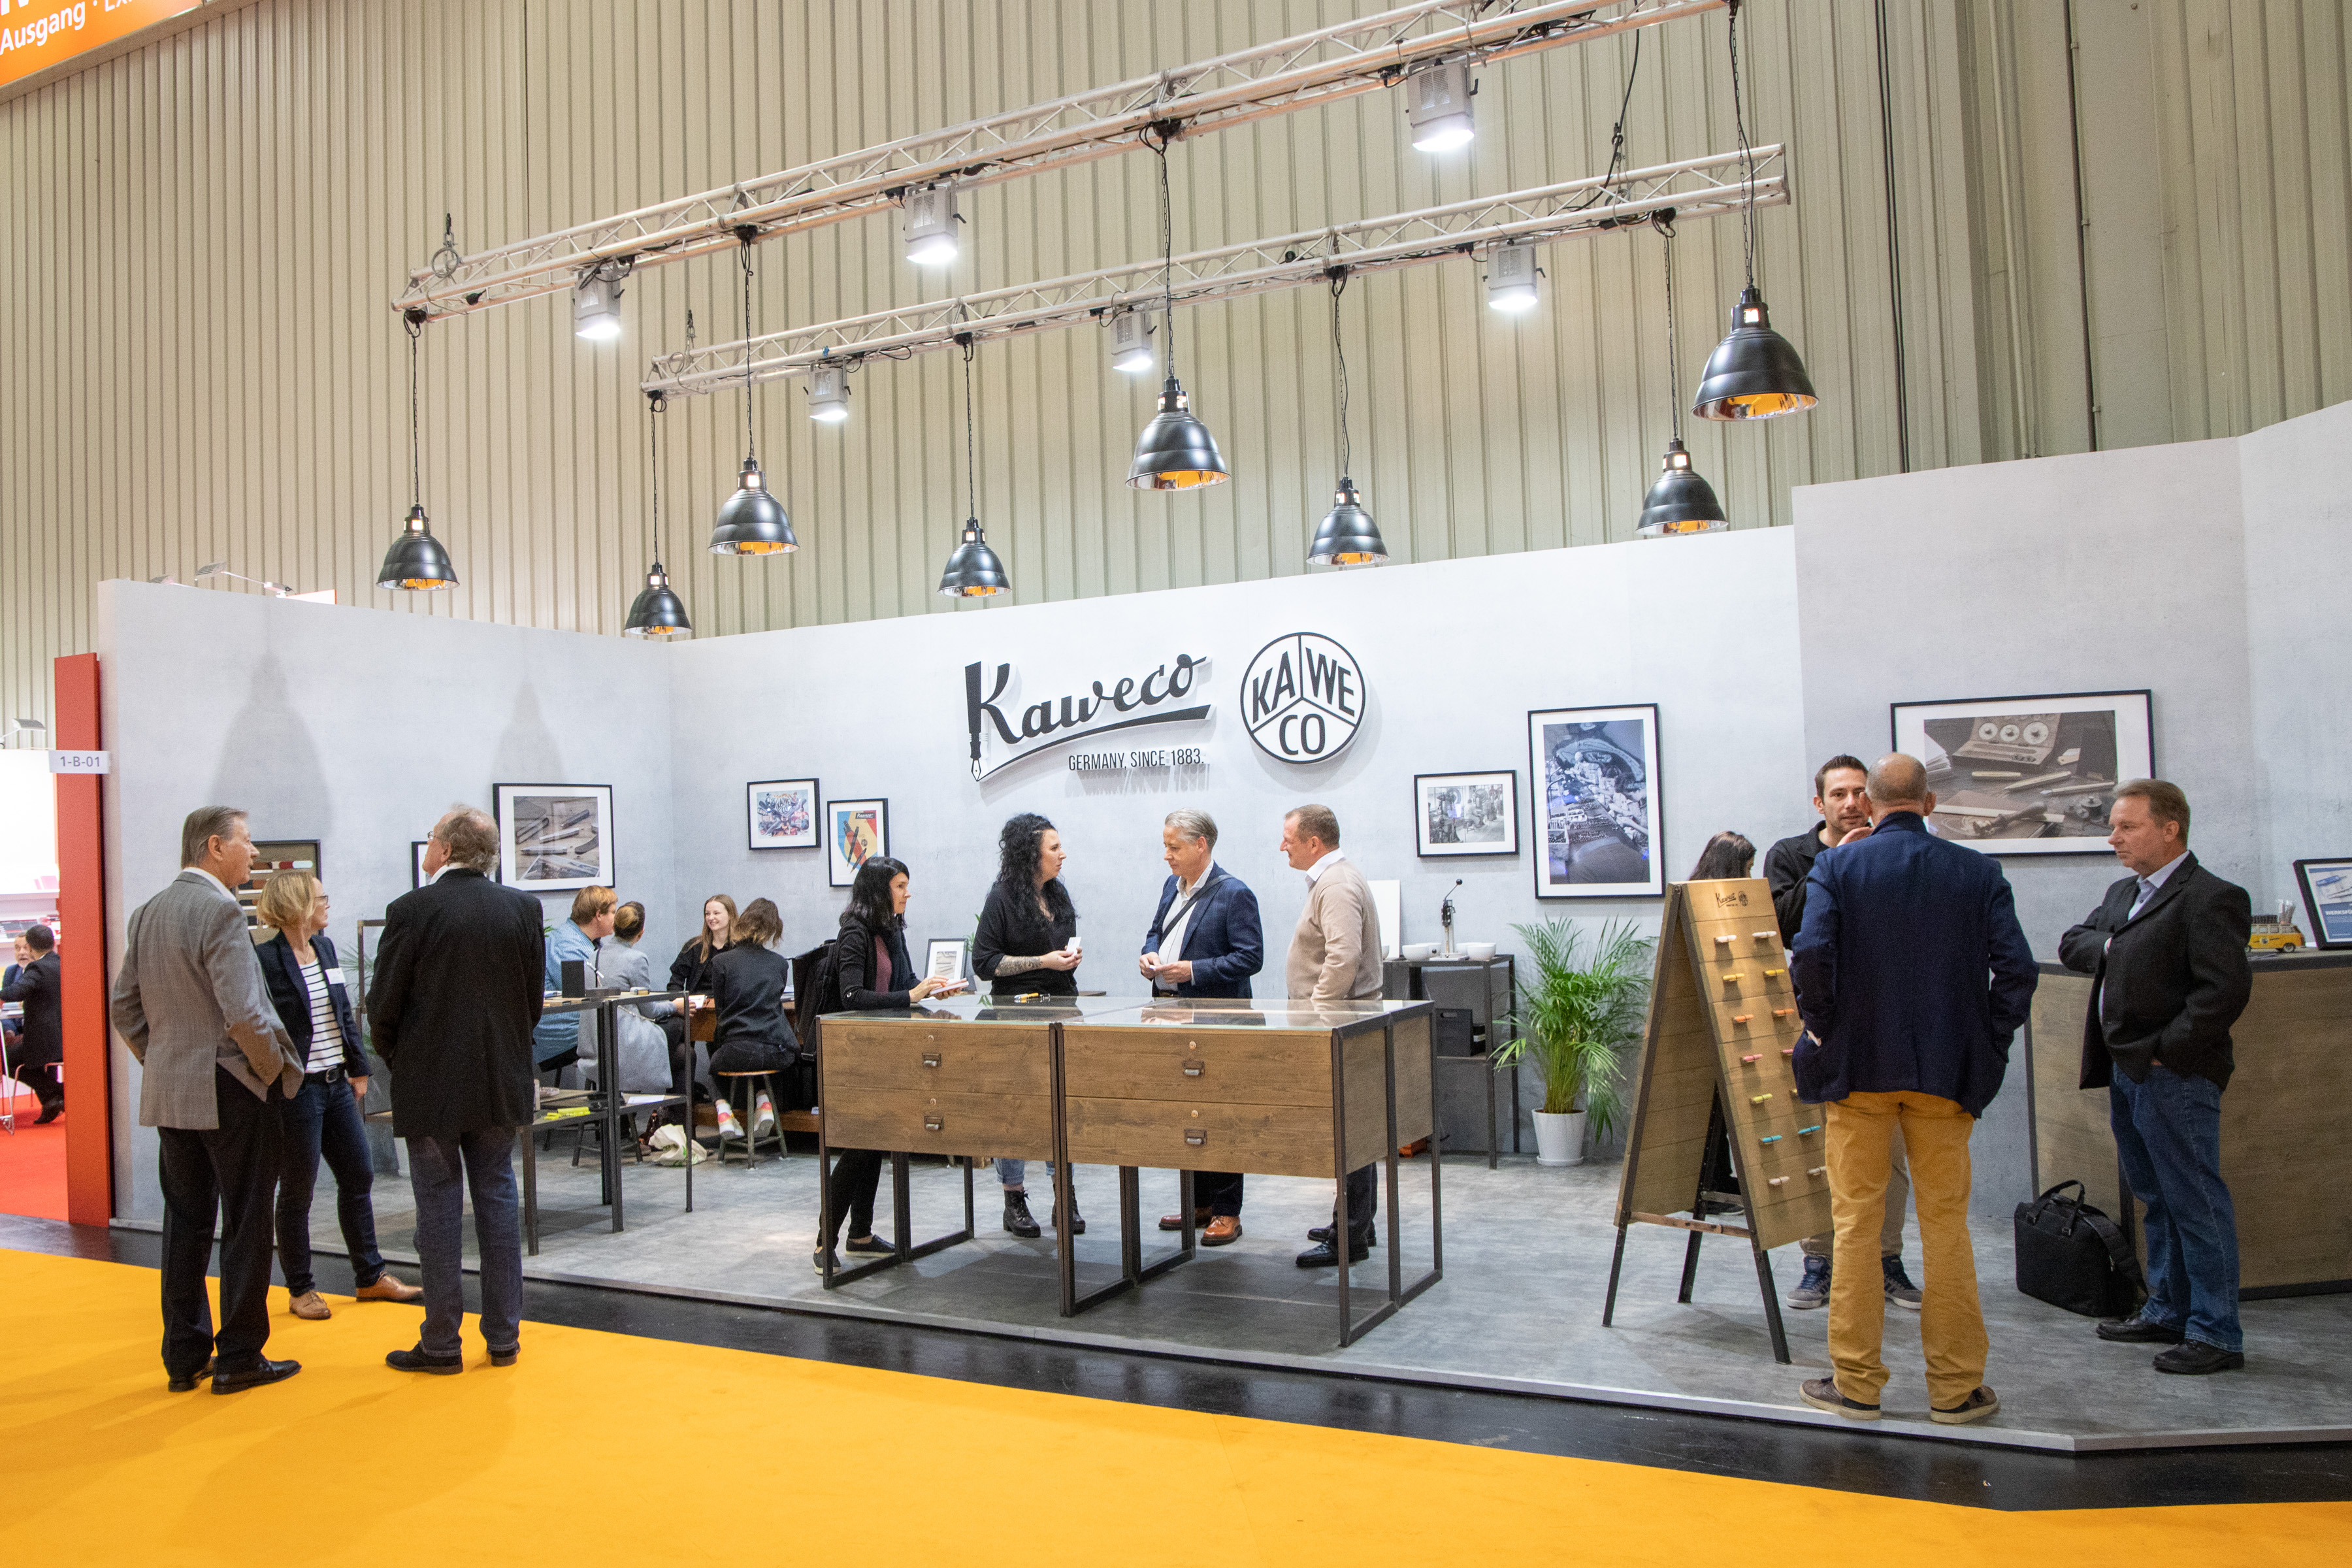 Insights-X booth Kaweco